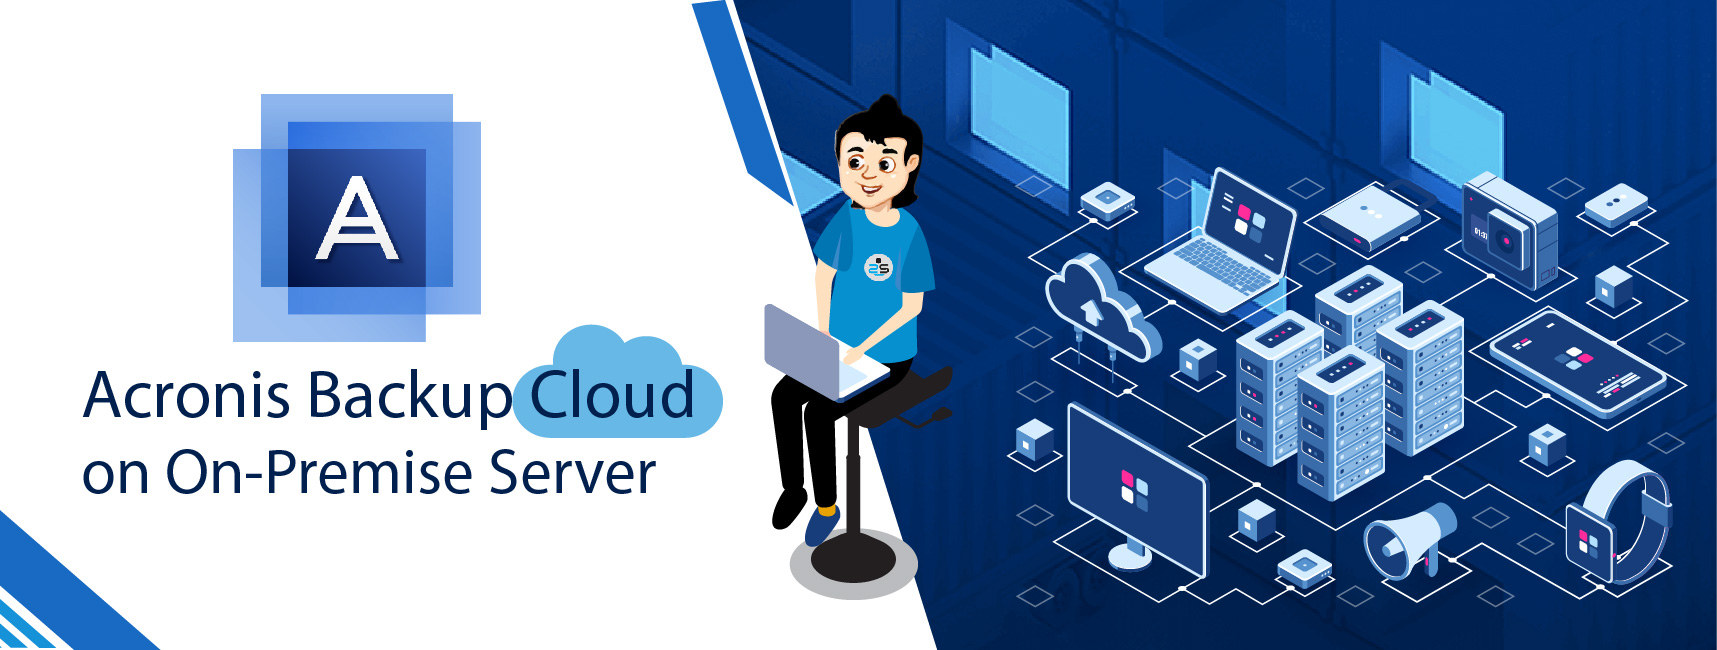 Acronis Backup Cloud on On-Premise Server